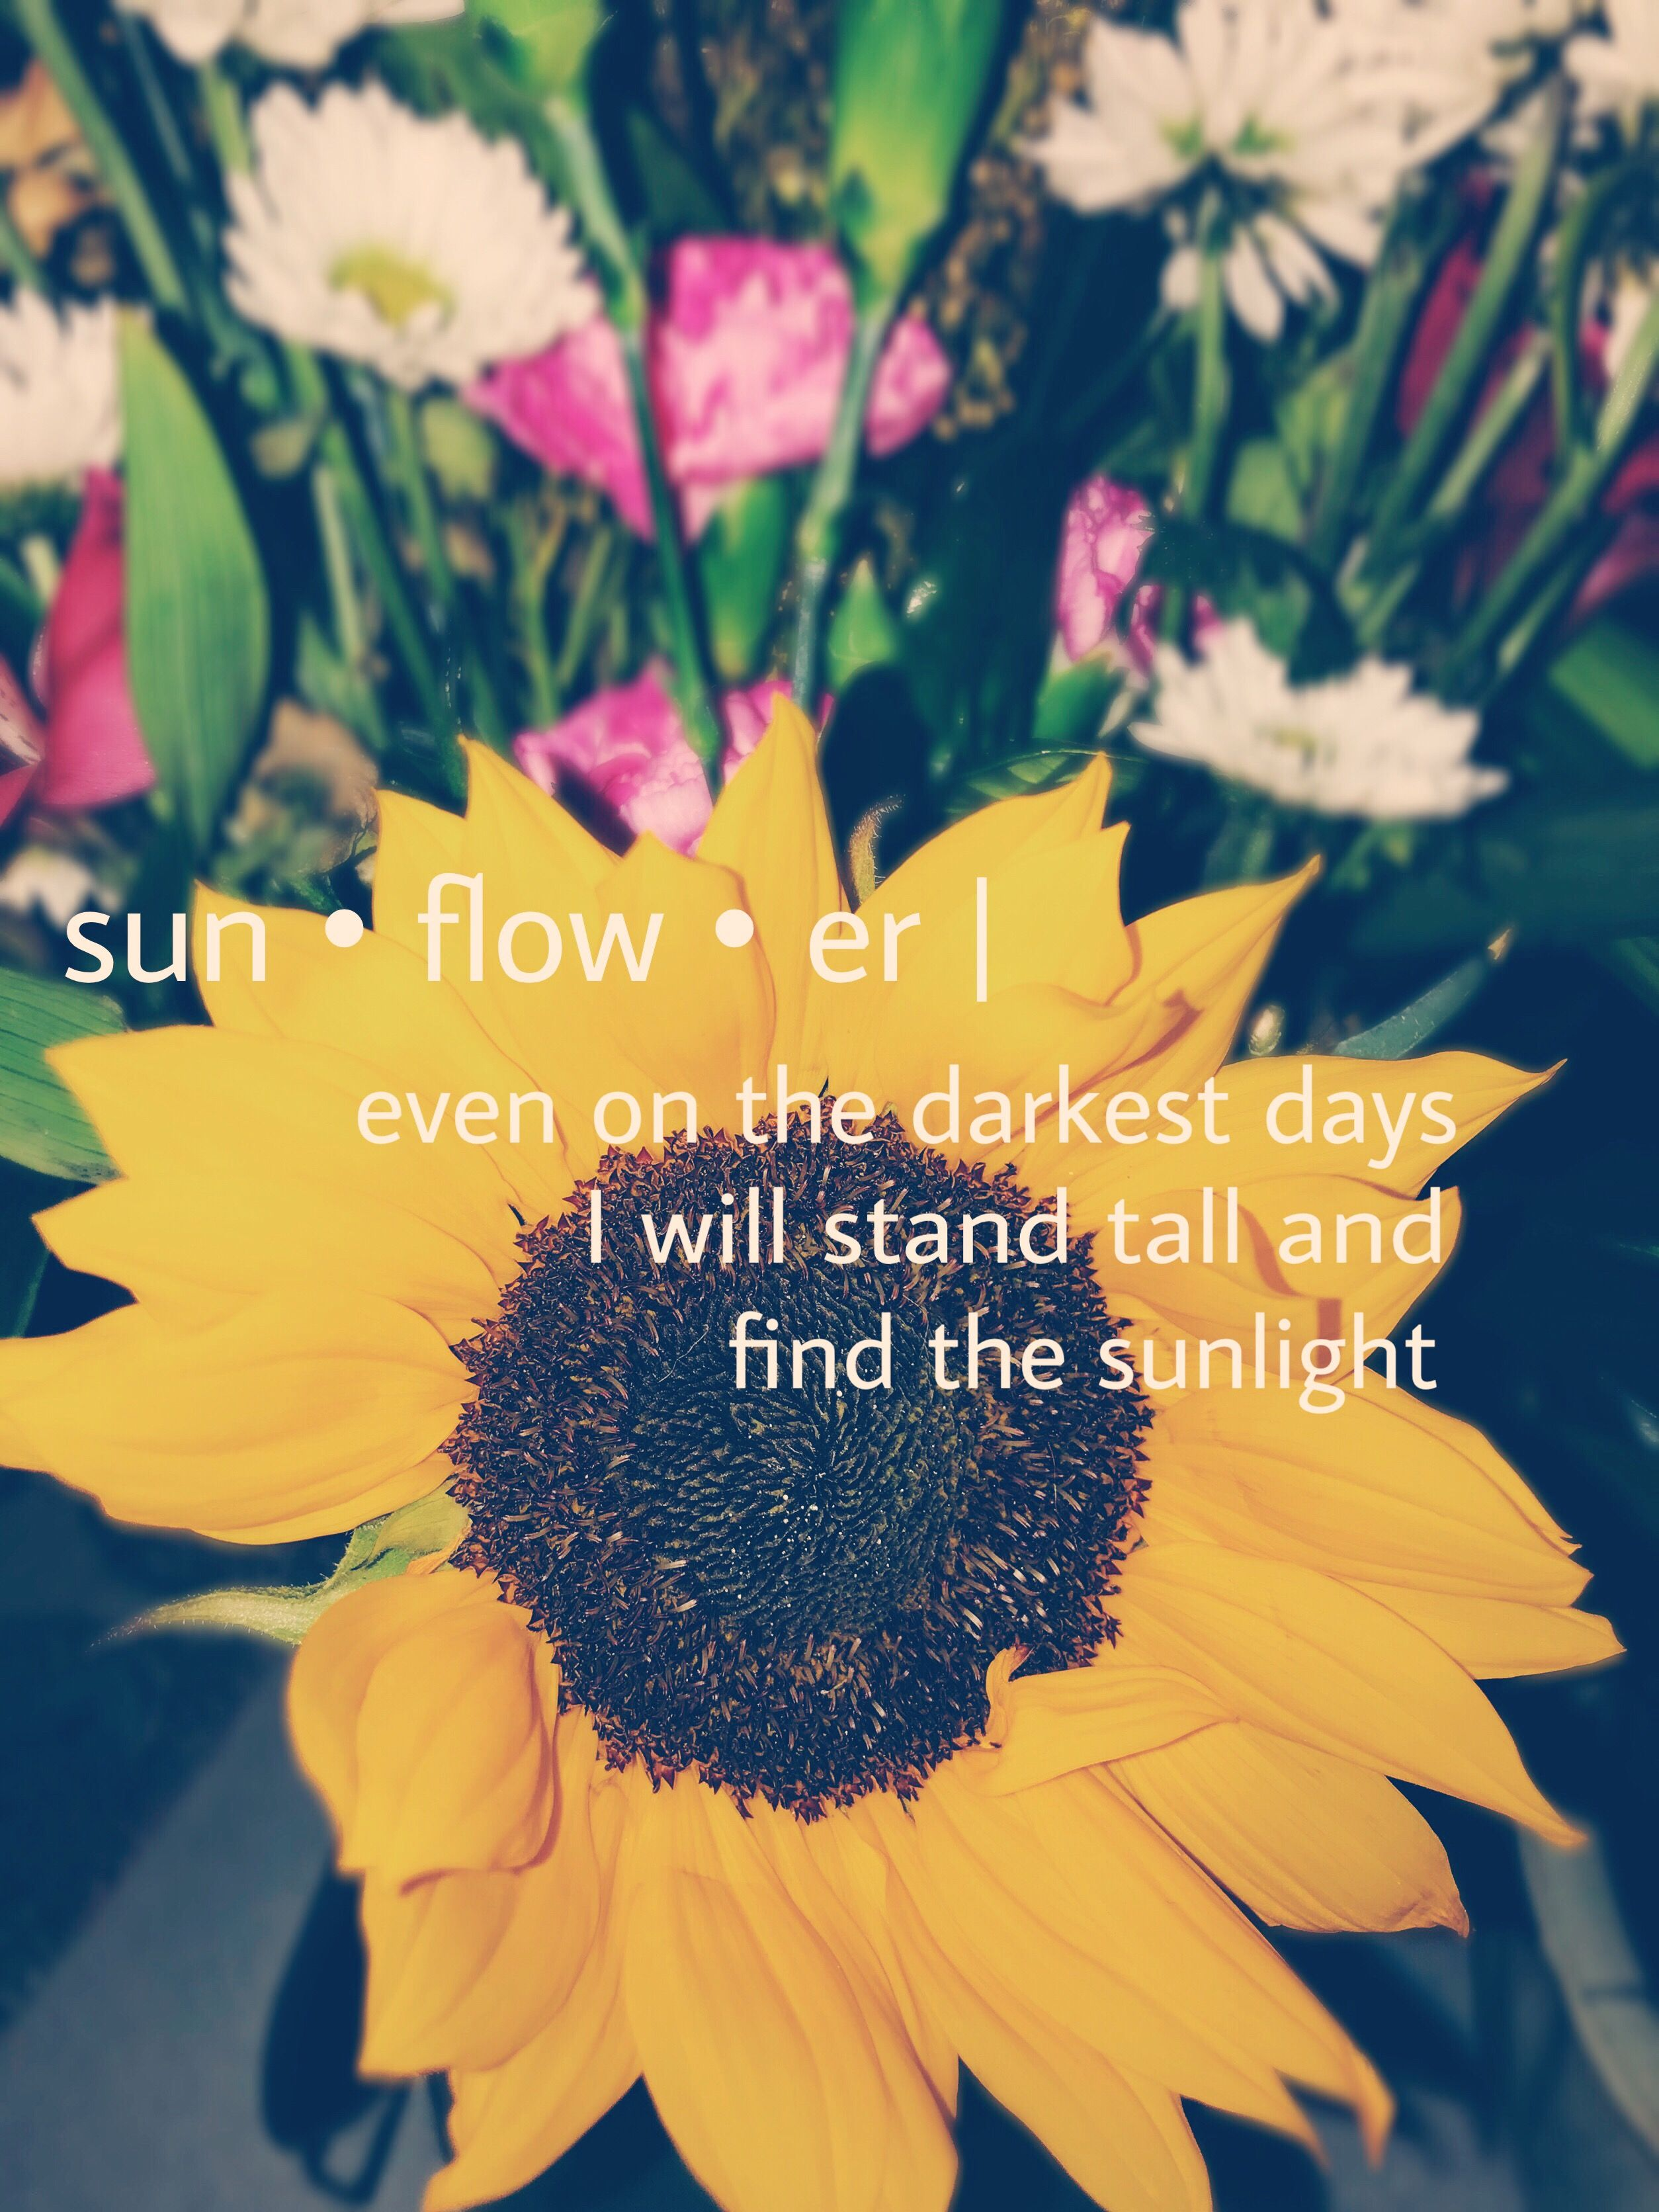 Sunflower Quotes Sunflower Quotes Flower Quotes Inspirational Quotes